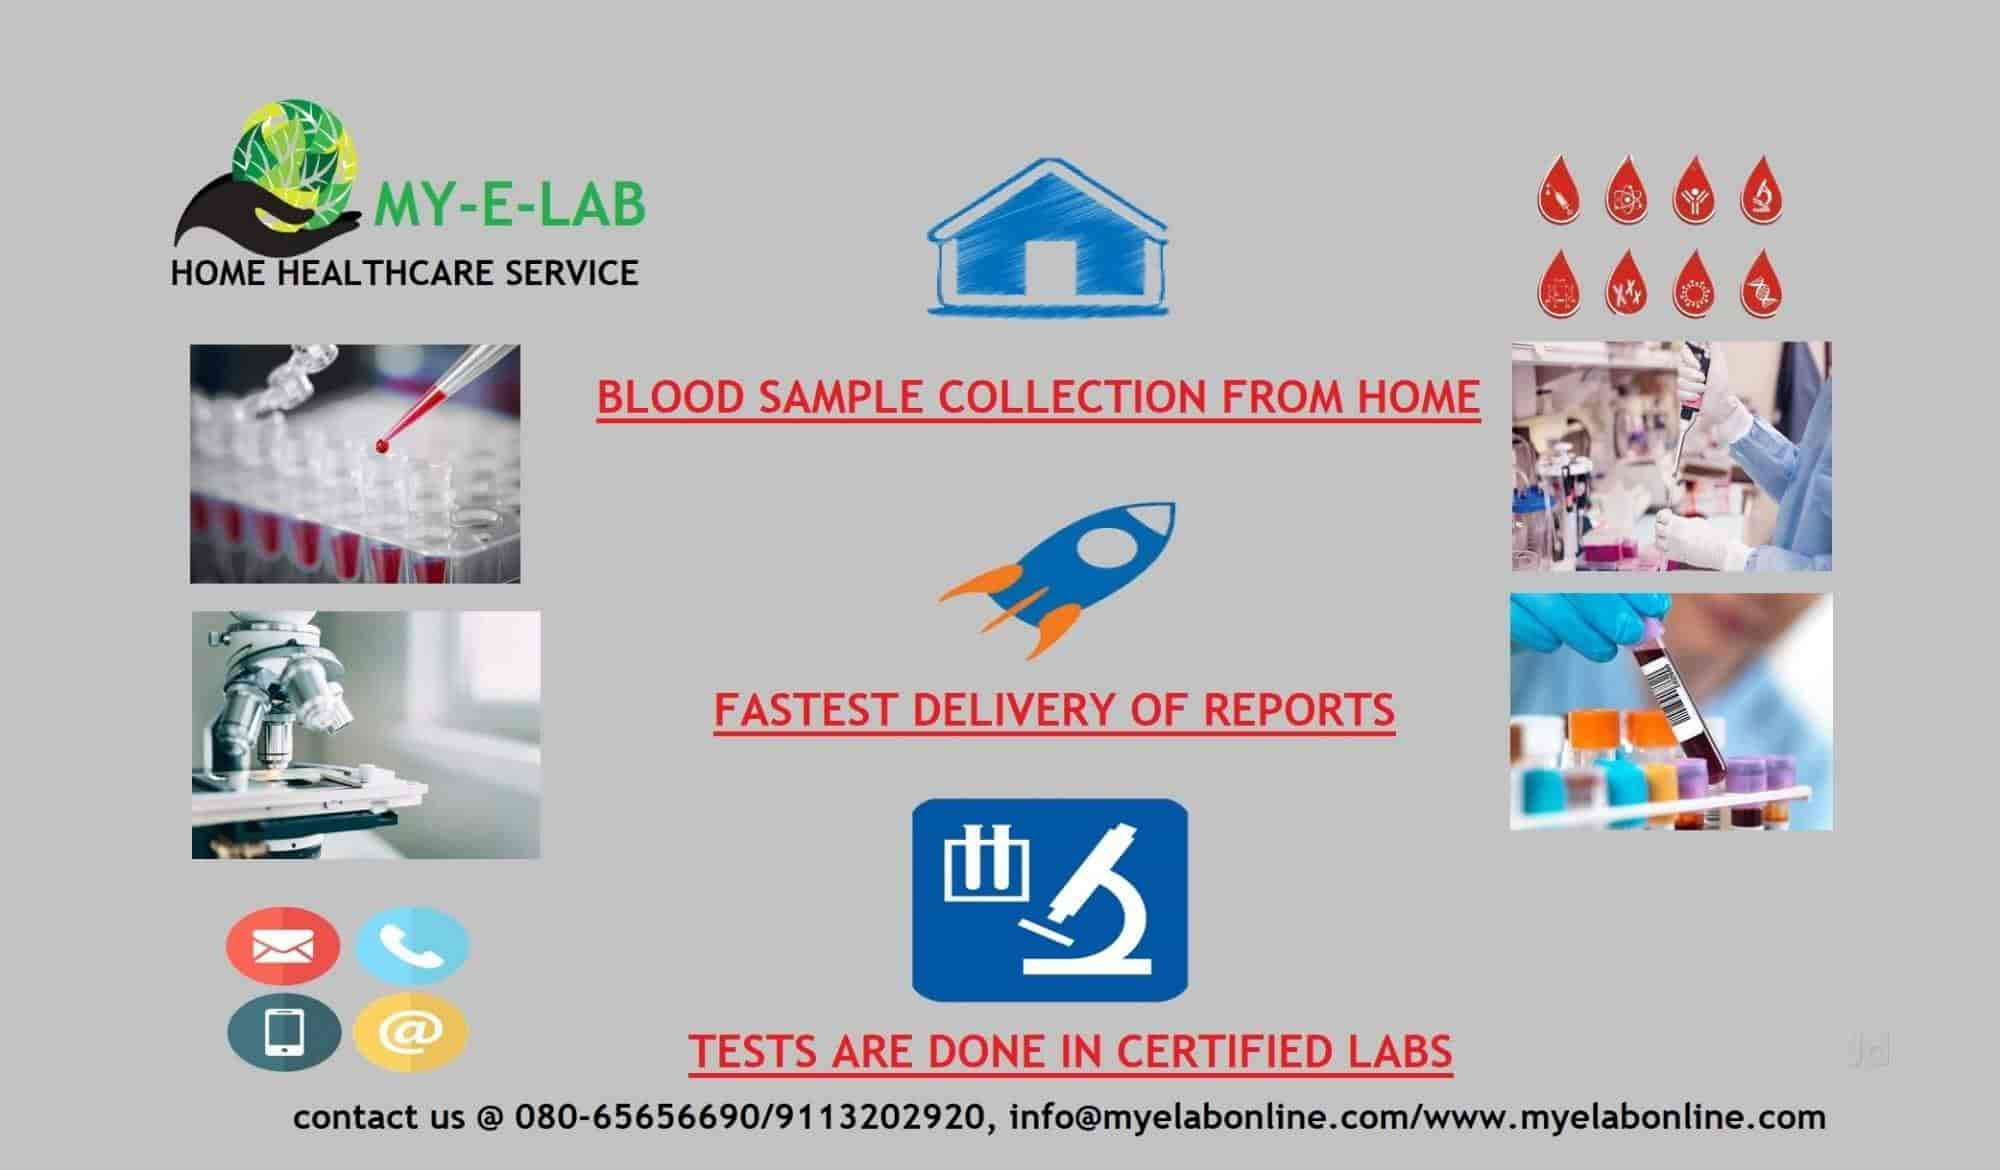 My E Lab Home Health Care Service Photos, Dr Shivaram